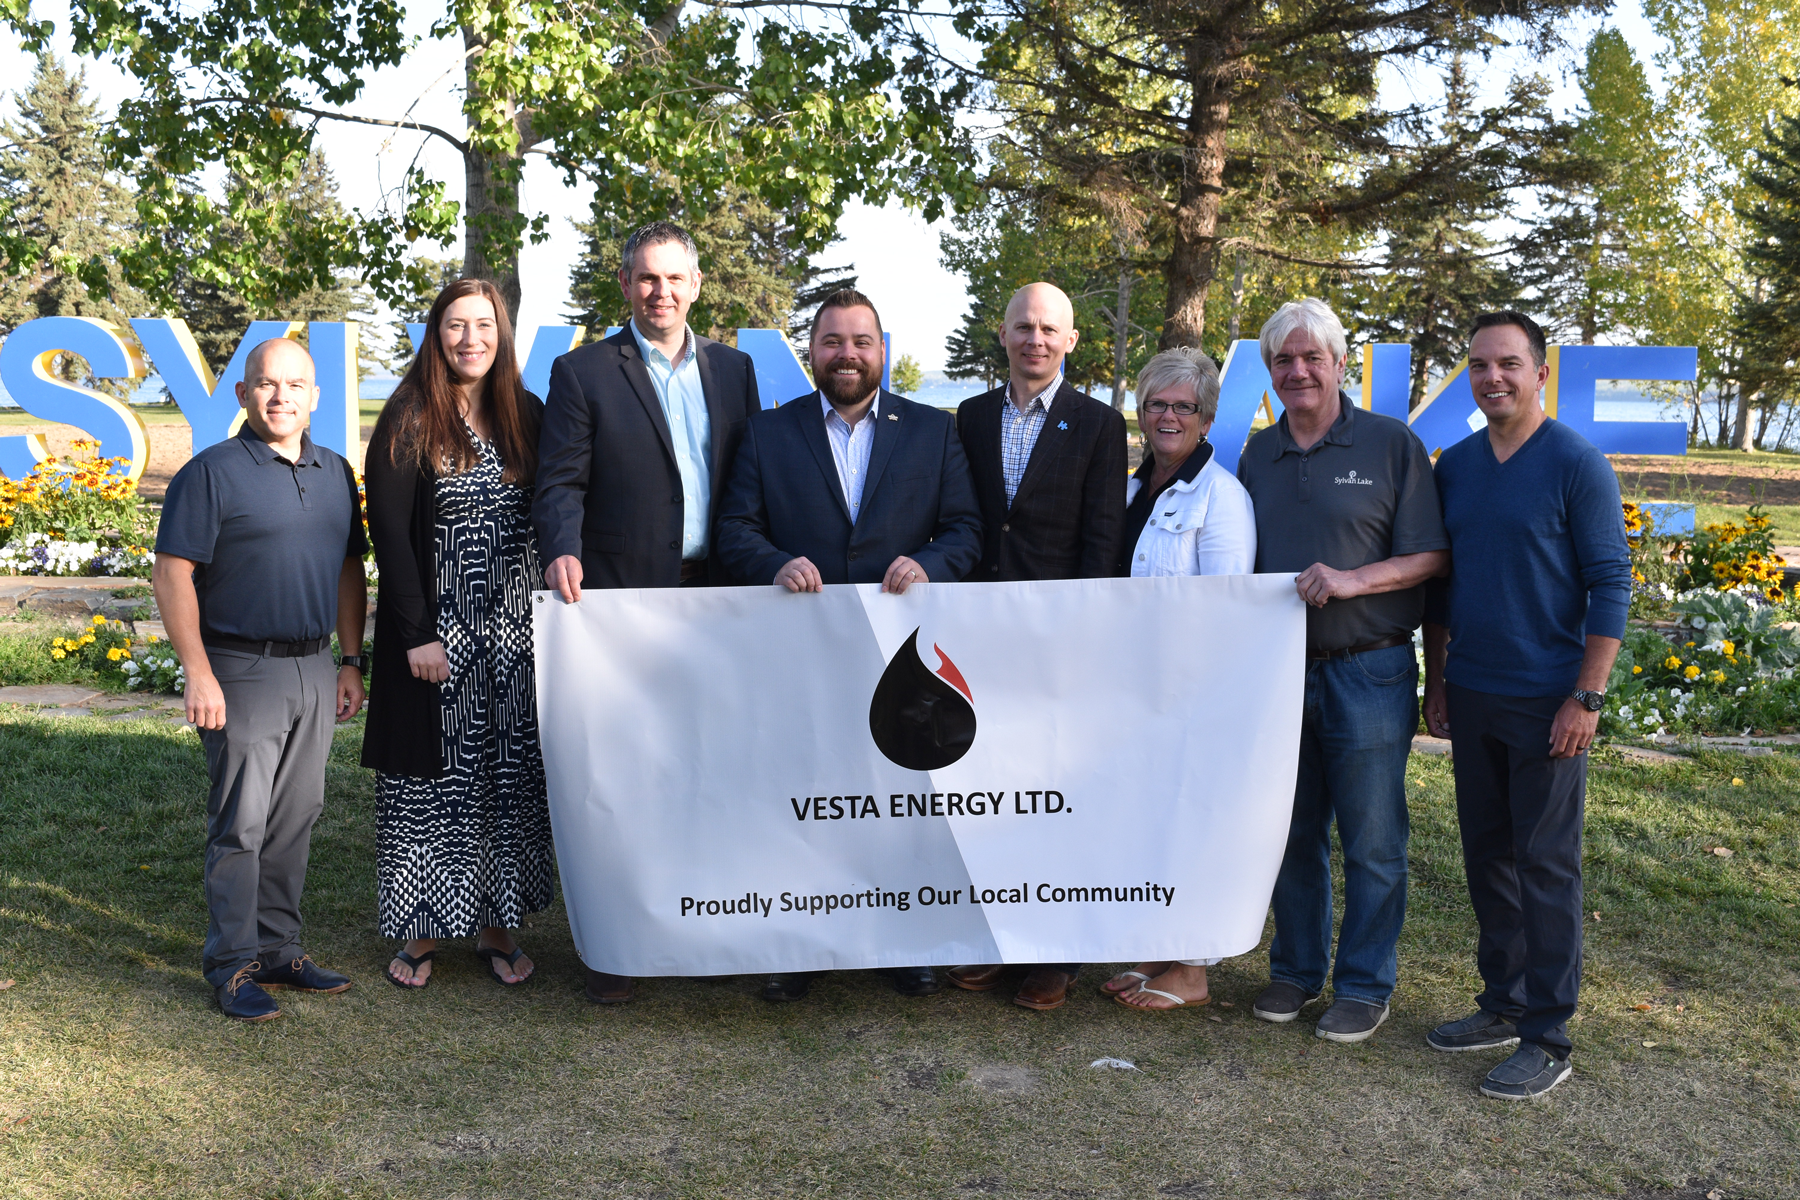 Vesta Energy Members with Council